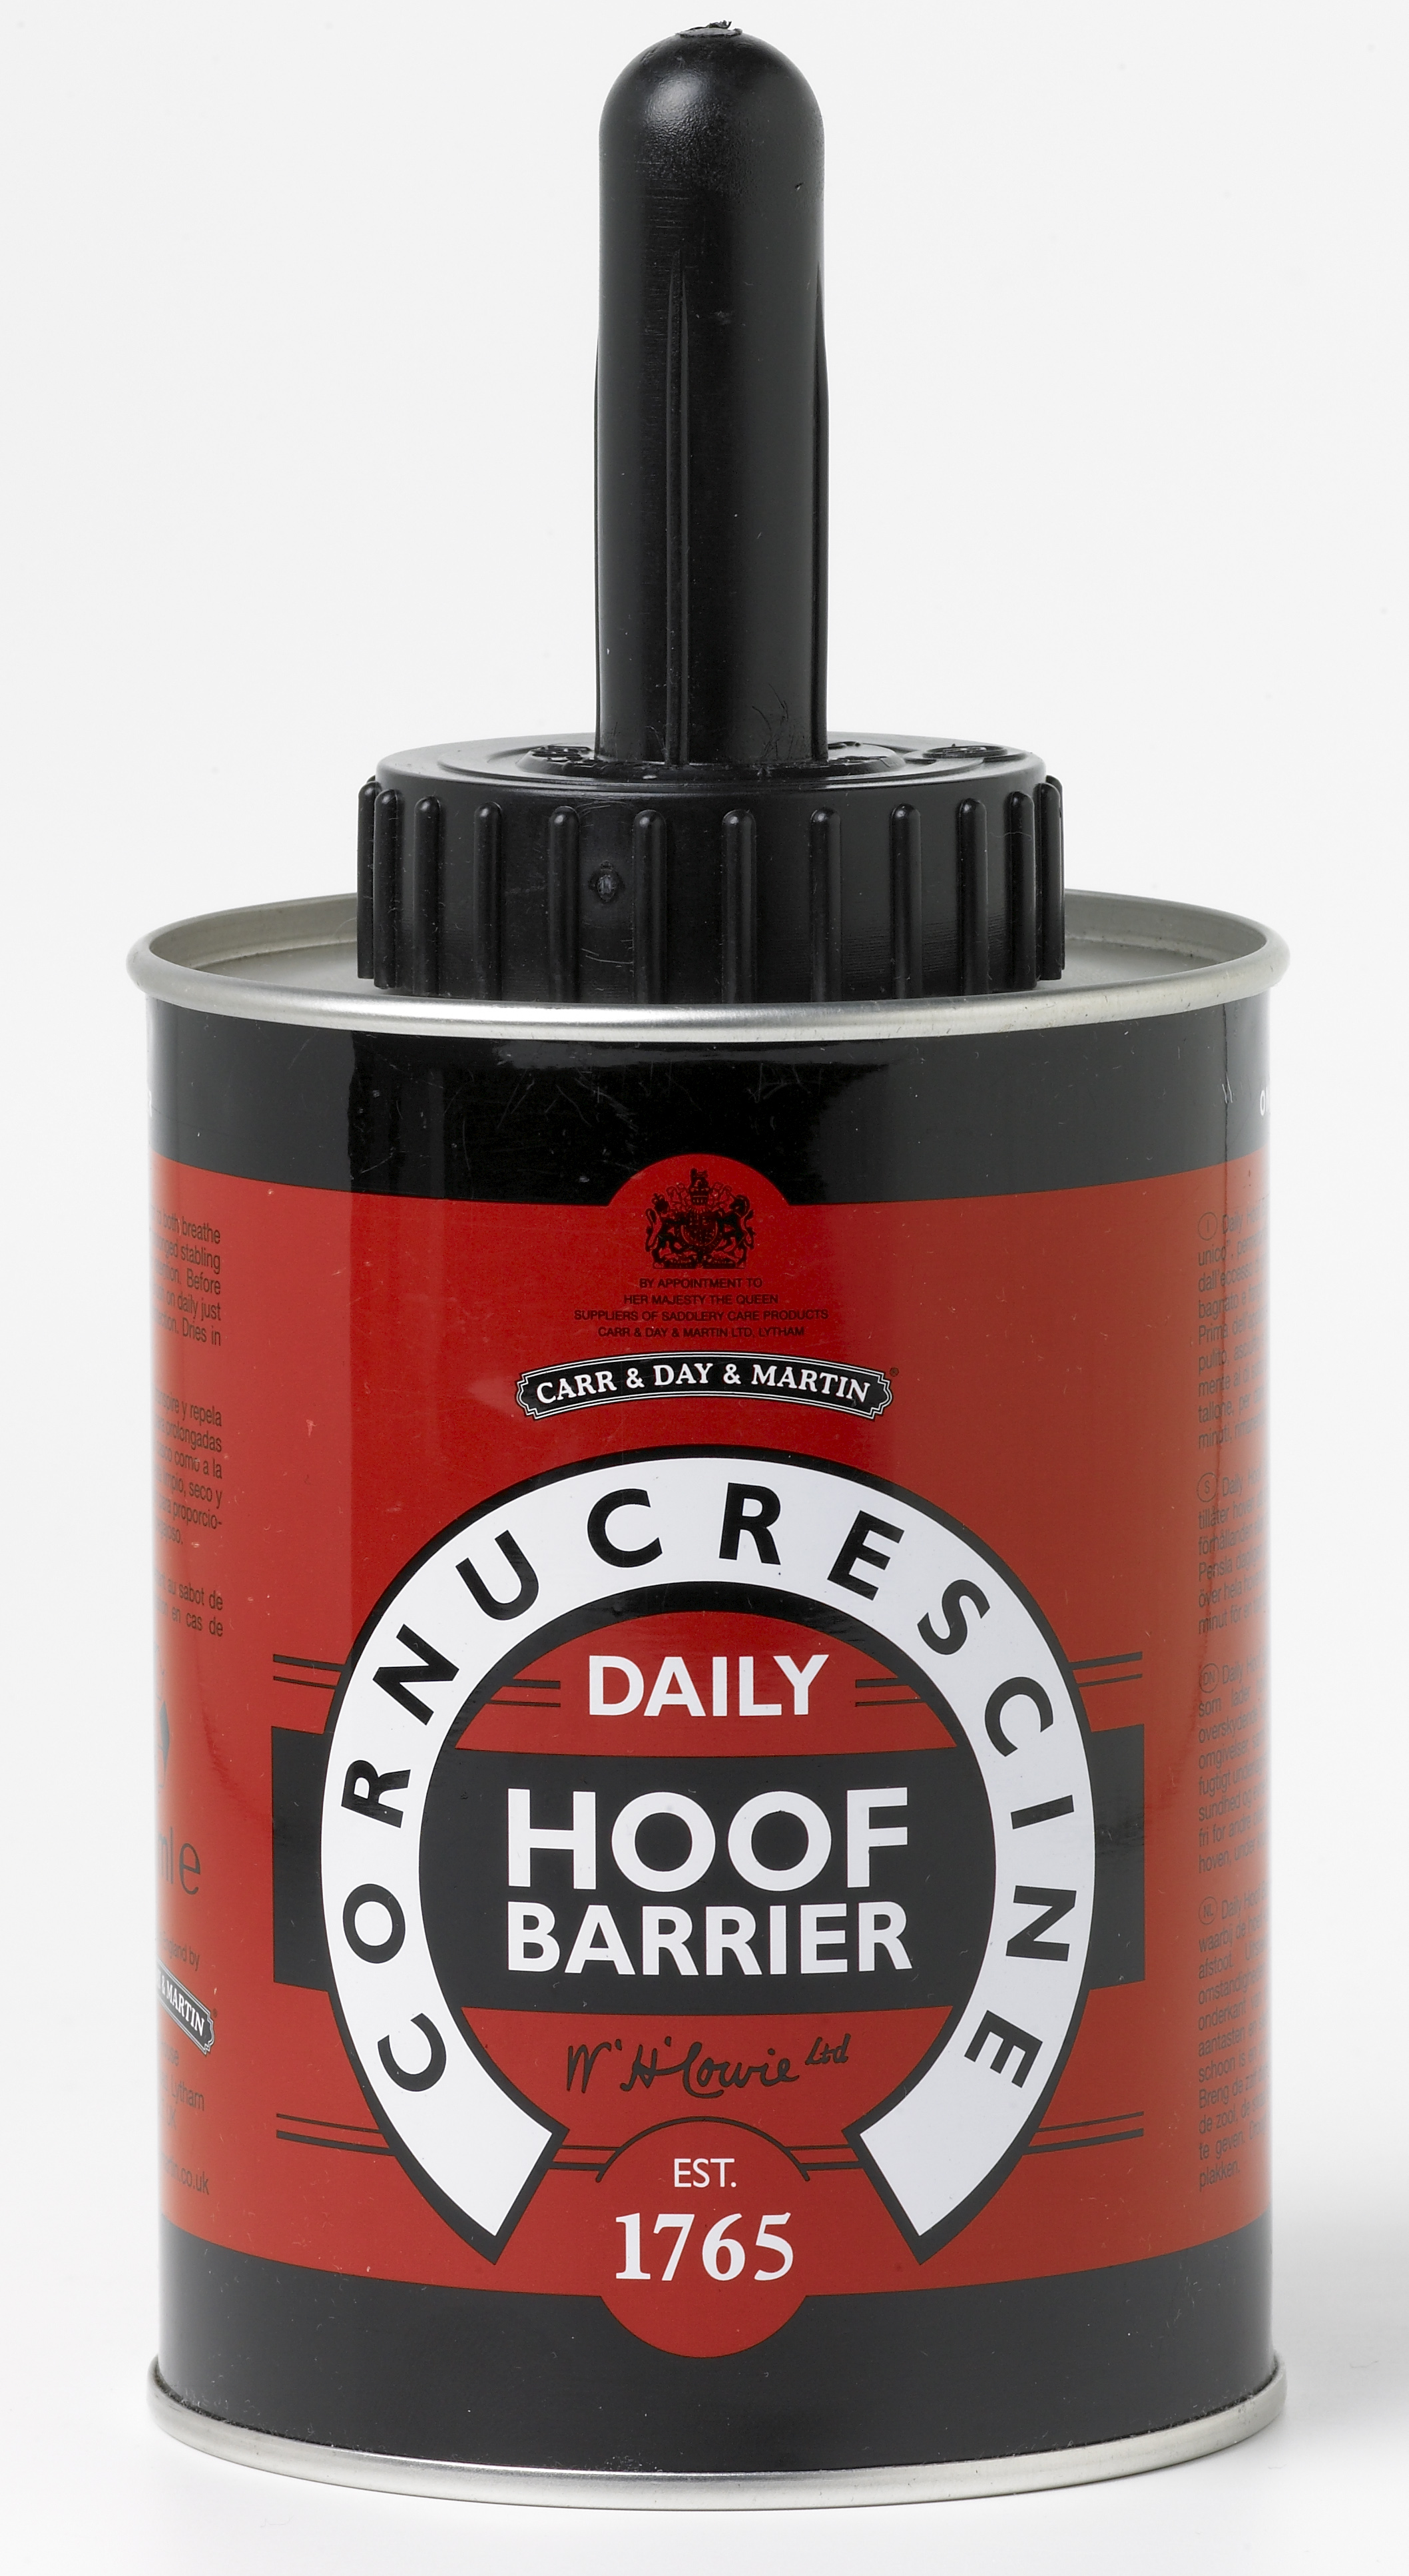 Carr & Day & Martin Cornucrescine Daily Hoof Barrier for Horses